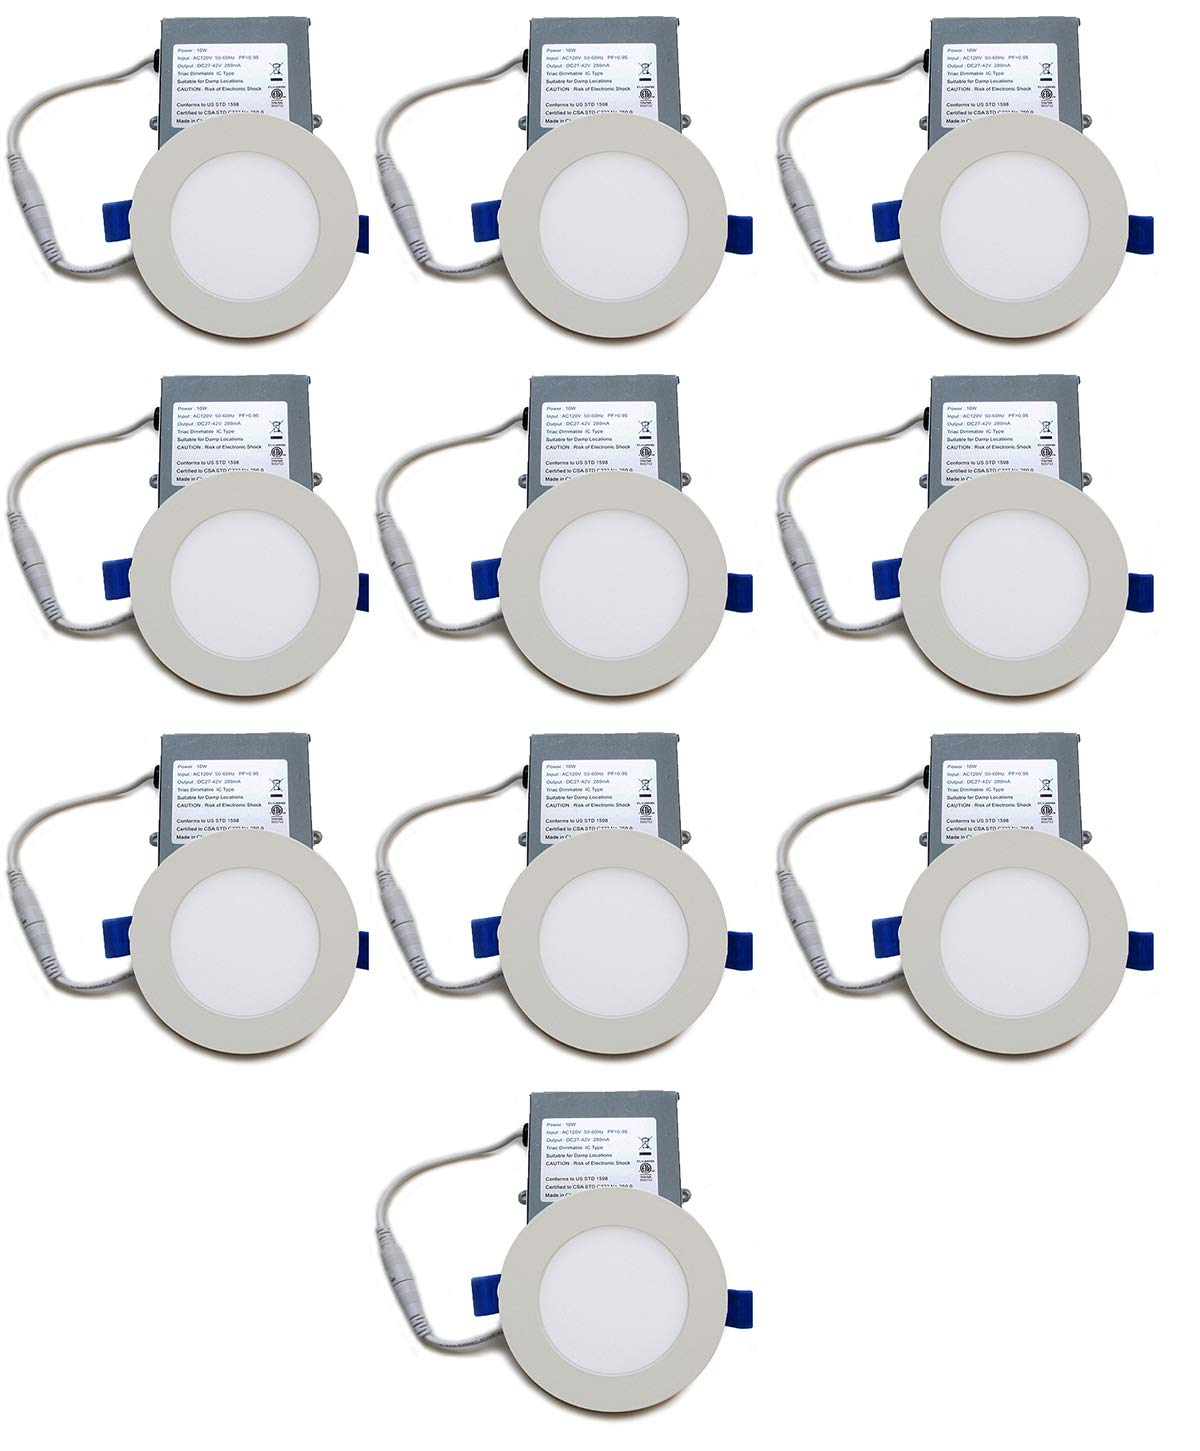 YUURTA (10-Pack) Slim LED Recessed Light (Pot Light/Downlight) 4-Inch 10W 4000K (Pure White) Dimmable Round White Trim Thin Panel with Driver in Junction Box 120V ETL Listed IC Rated (4-Inch, 4000K)